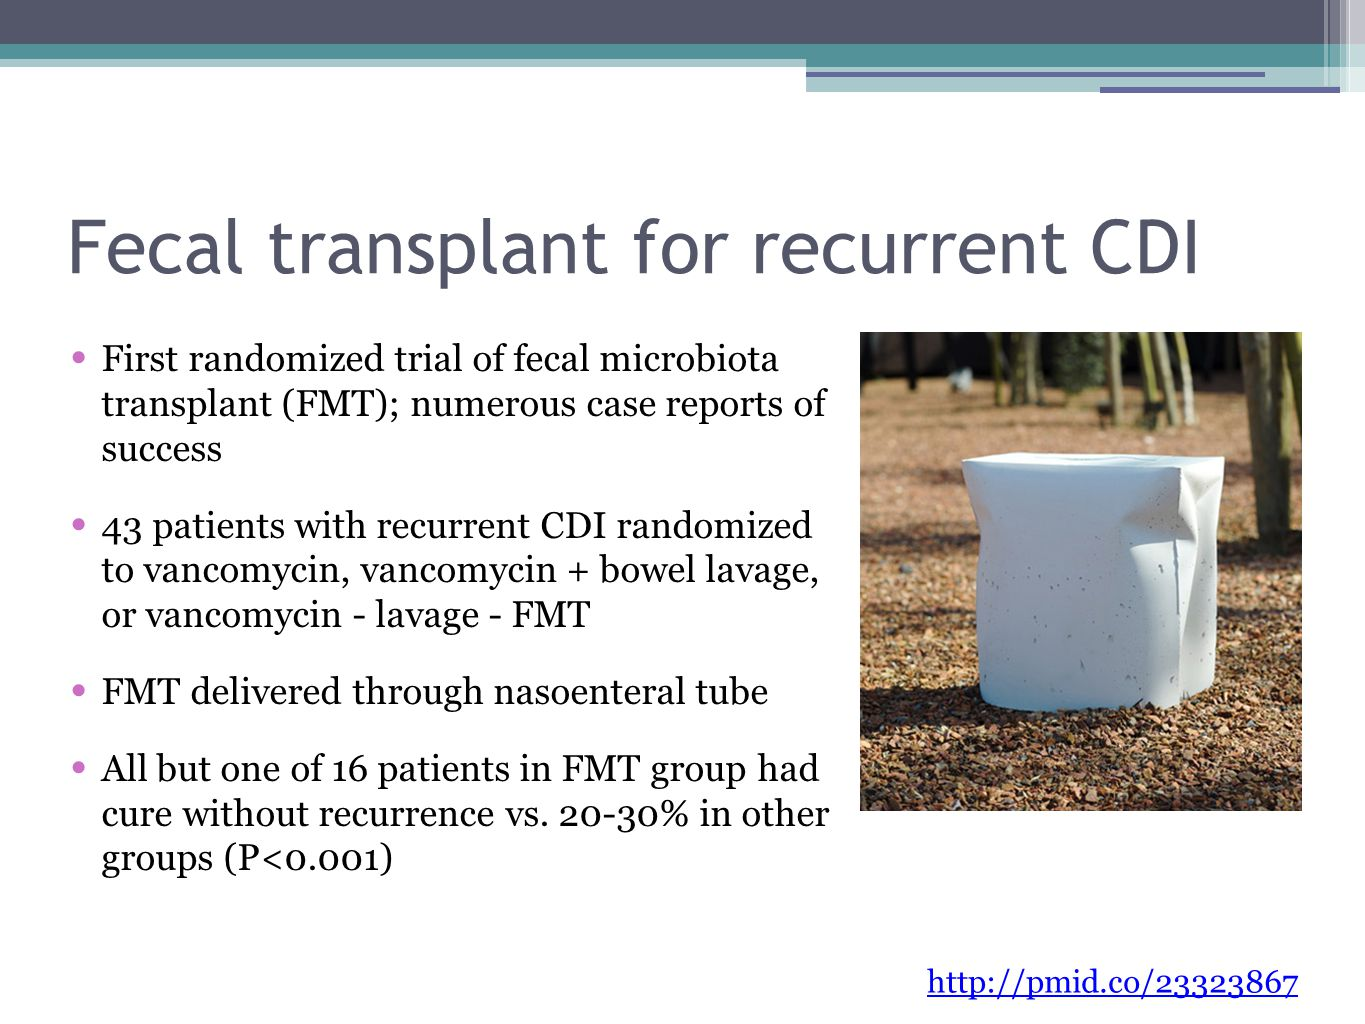 Fecal transplant for recurrent CDI First randomized trial of fecal microbiota transplant (FMT); numerous case reports of success 43 patients with recurrent CDI randomized to vancomycin, vancomycin + bowel lavage, or vancomycin - lavage - FMT FMT delivered through nasoenteral tube All but one of 16 patients in FMT group had cure without recurrence vs.